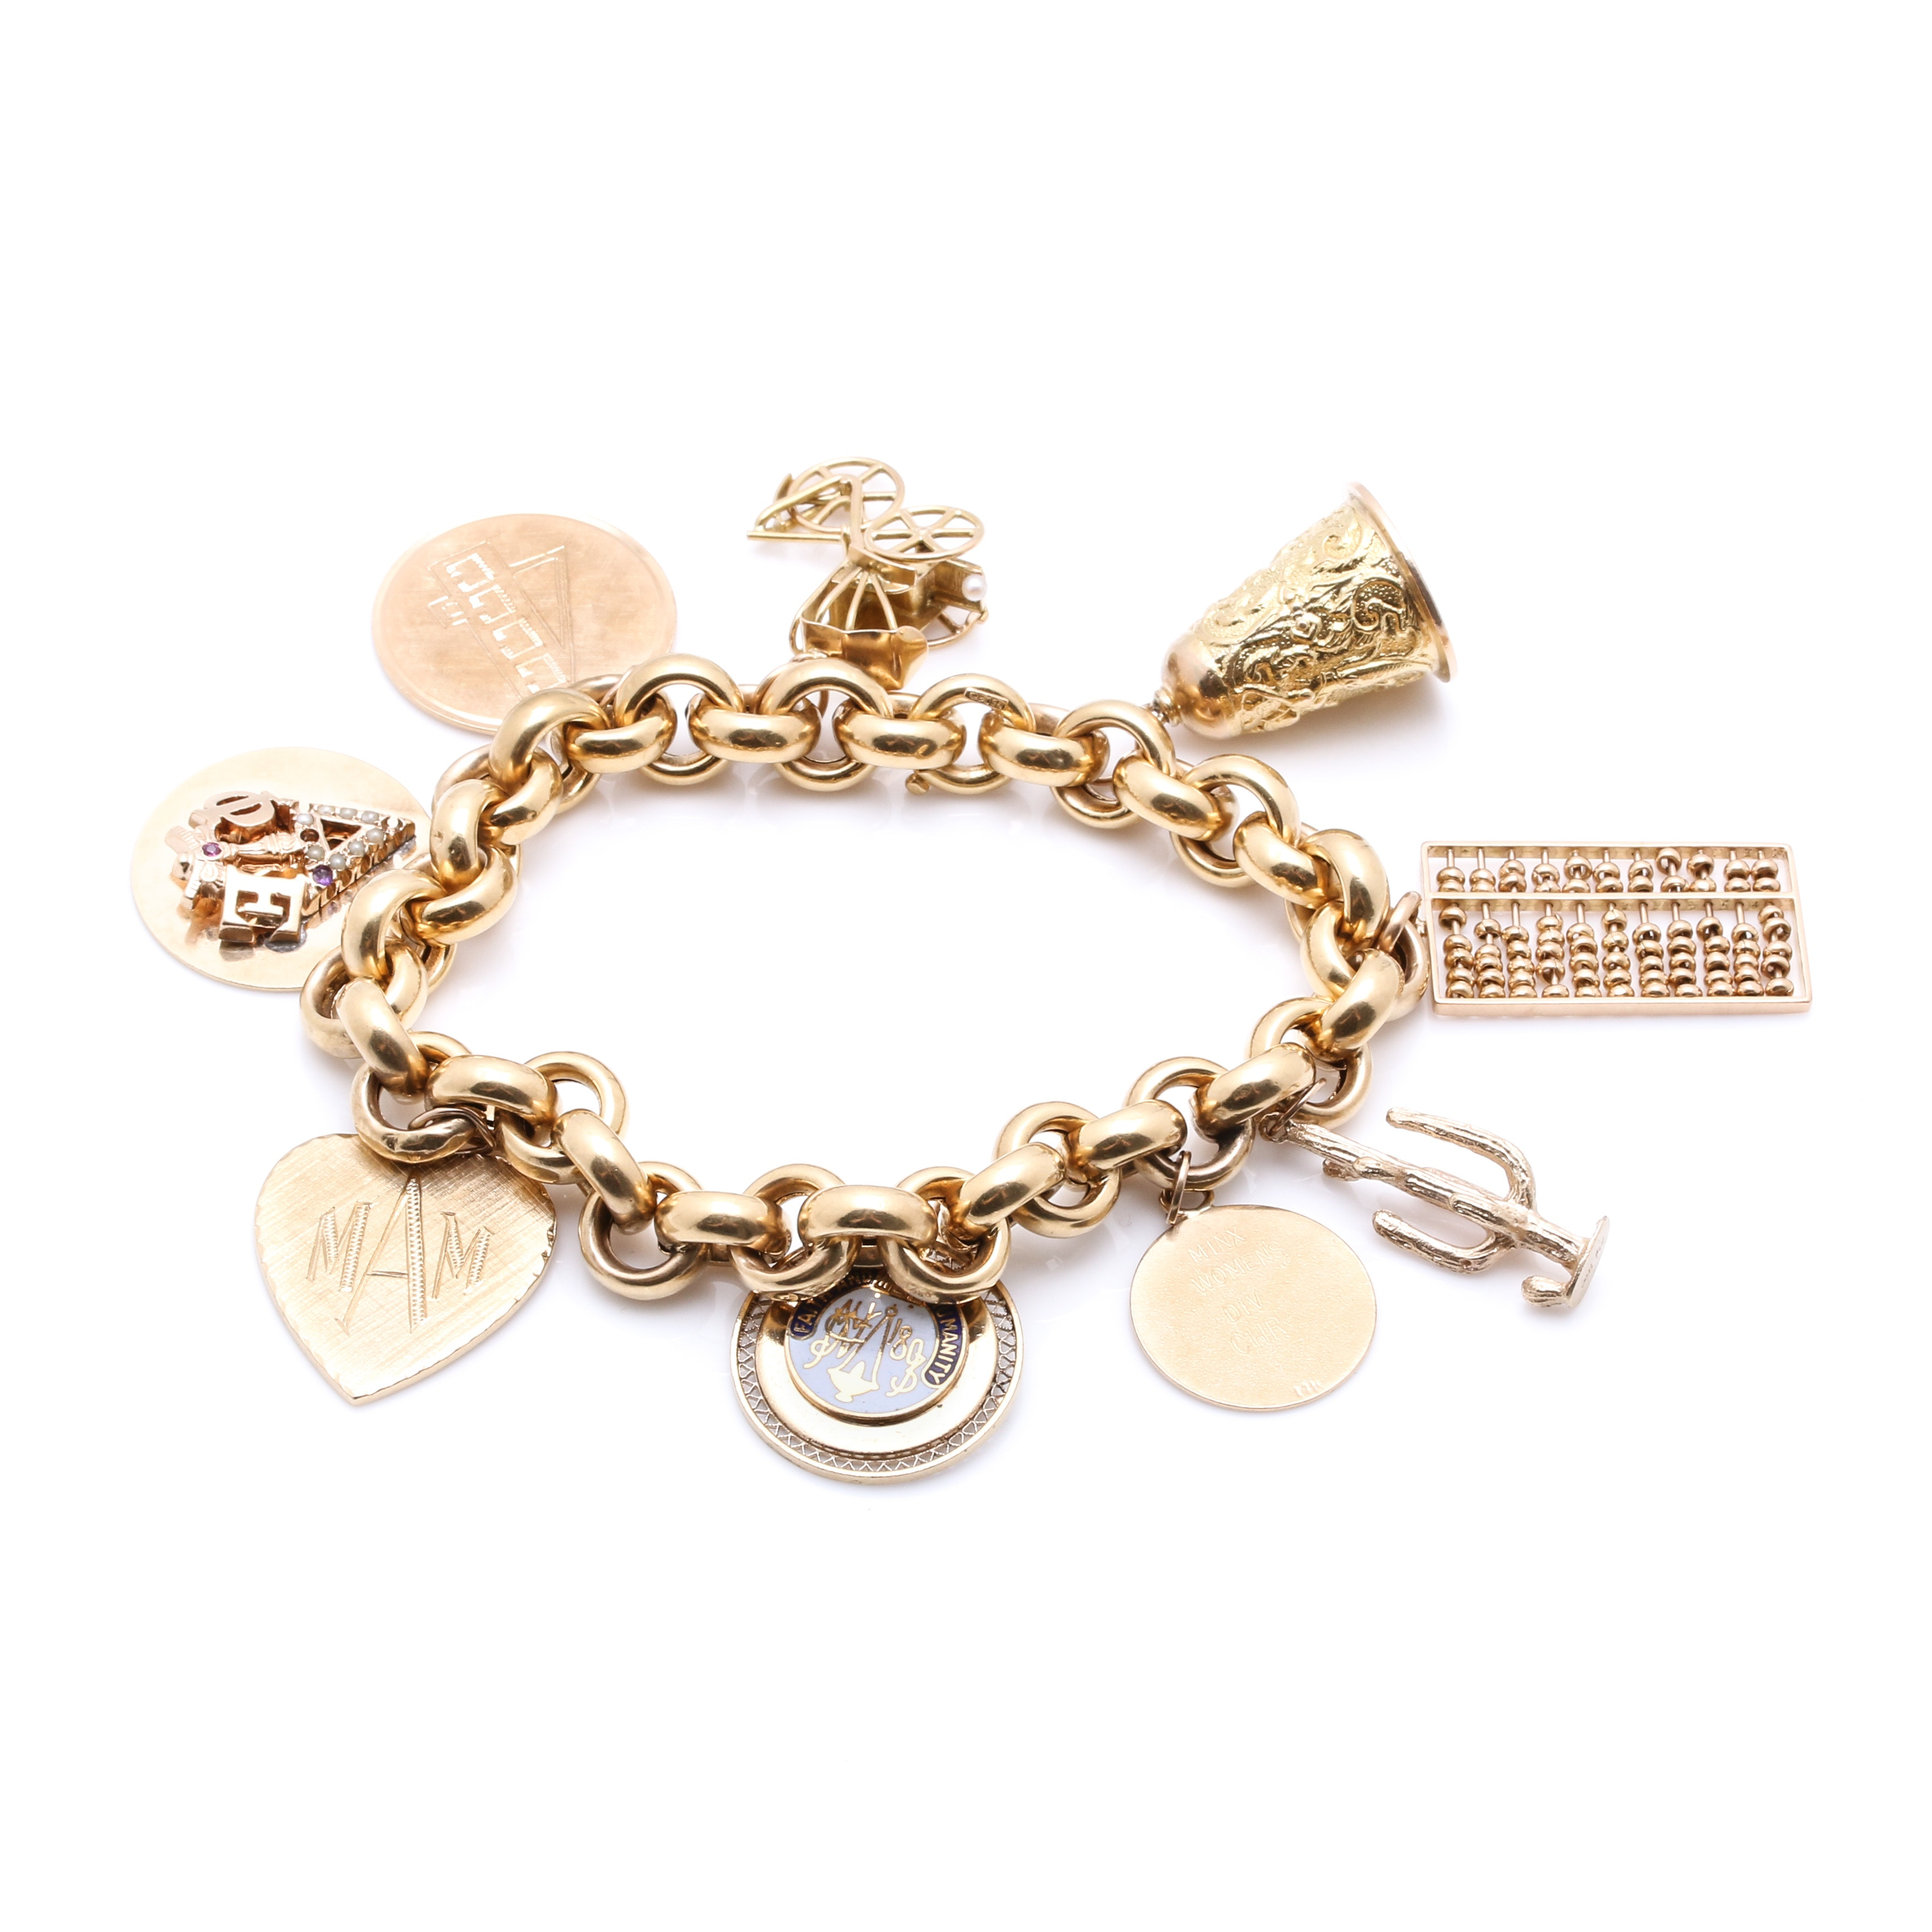 18K Yellow Gold Charm Bracelet with 14K and 18K Charms